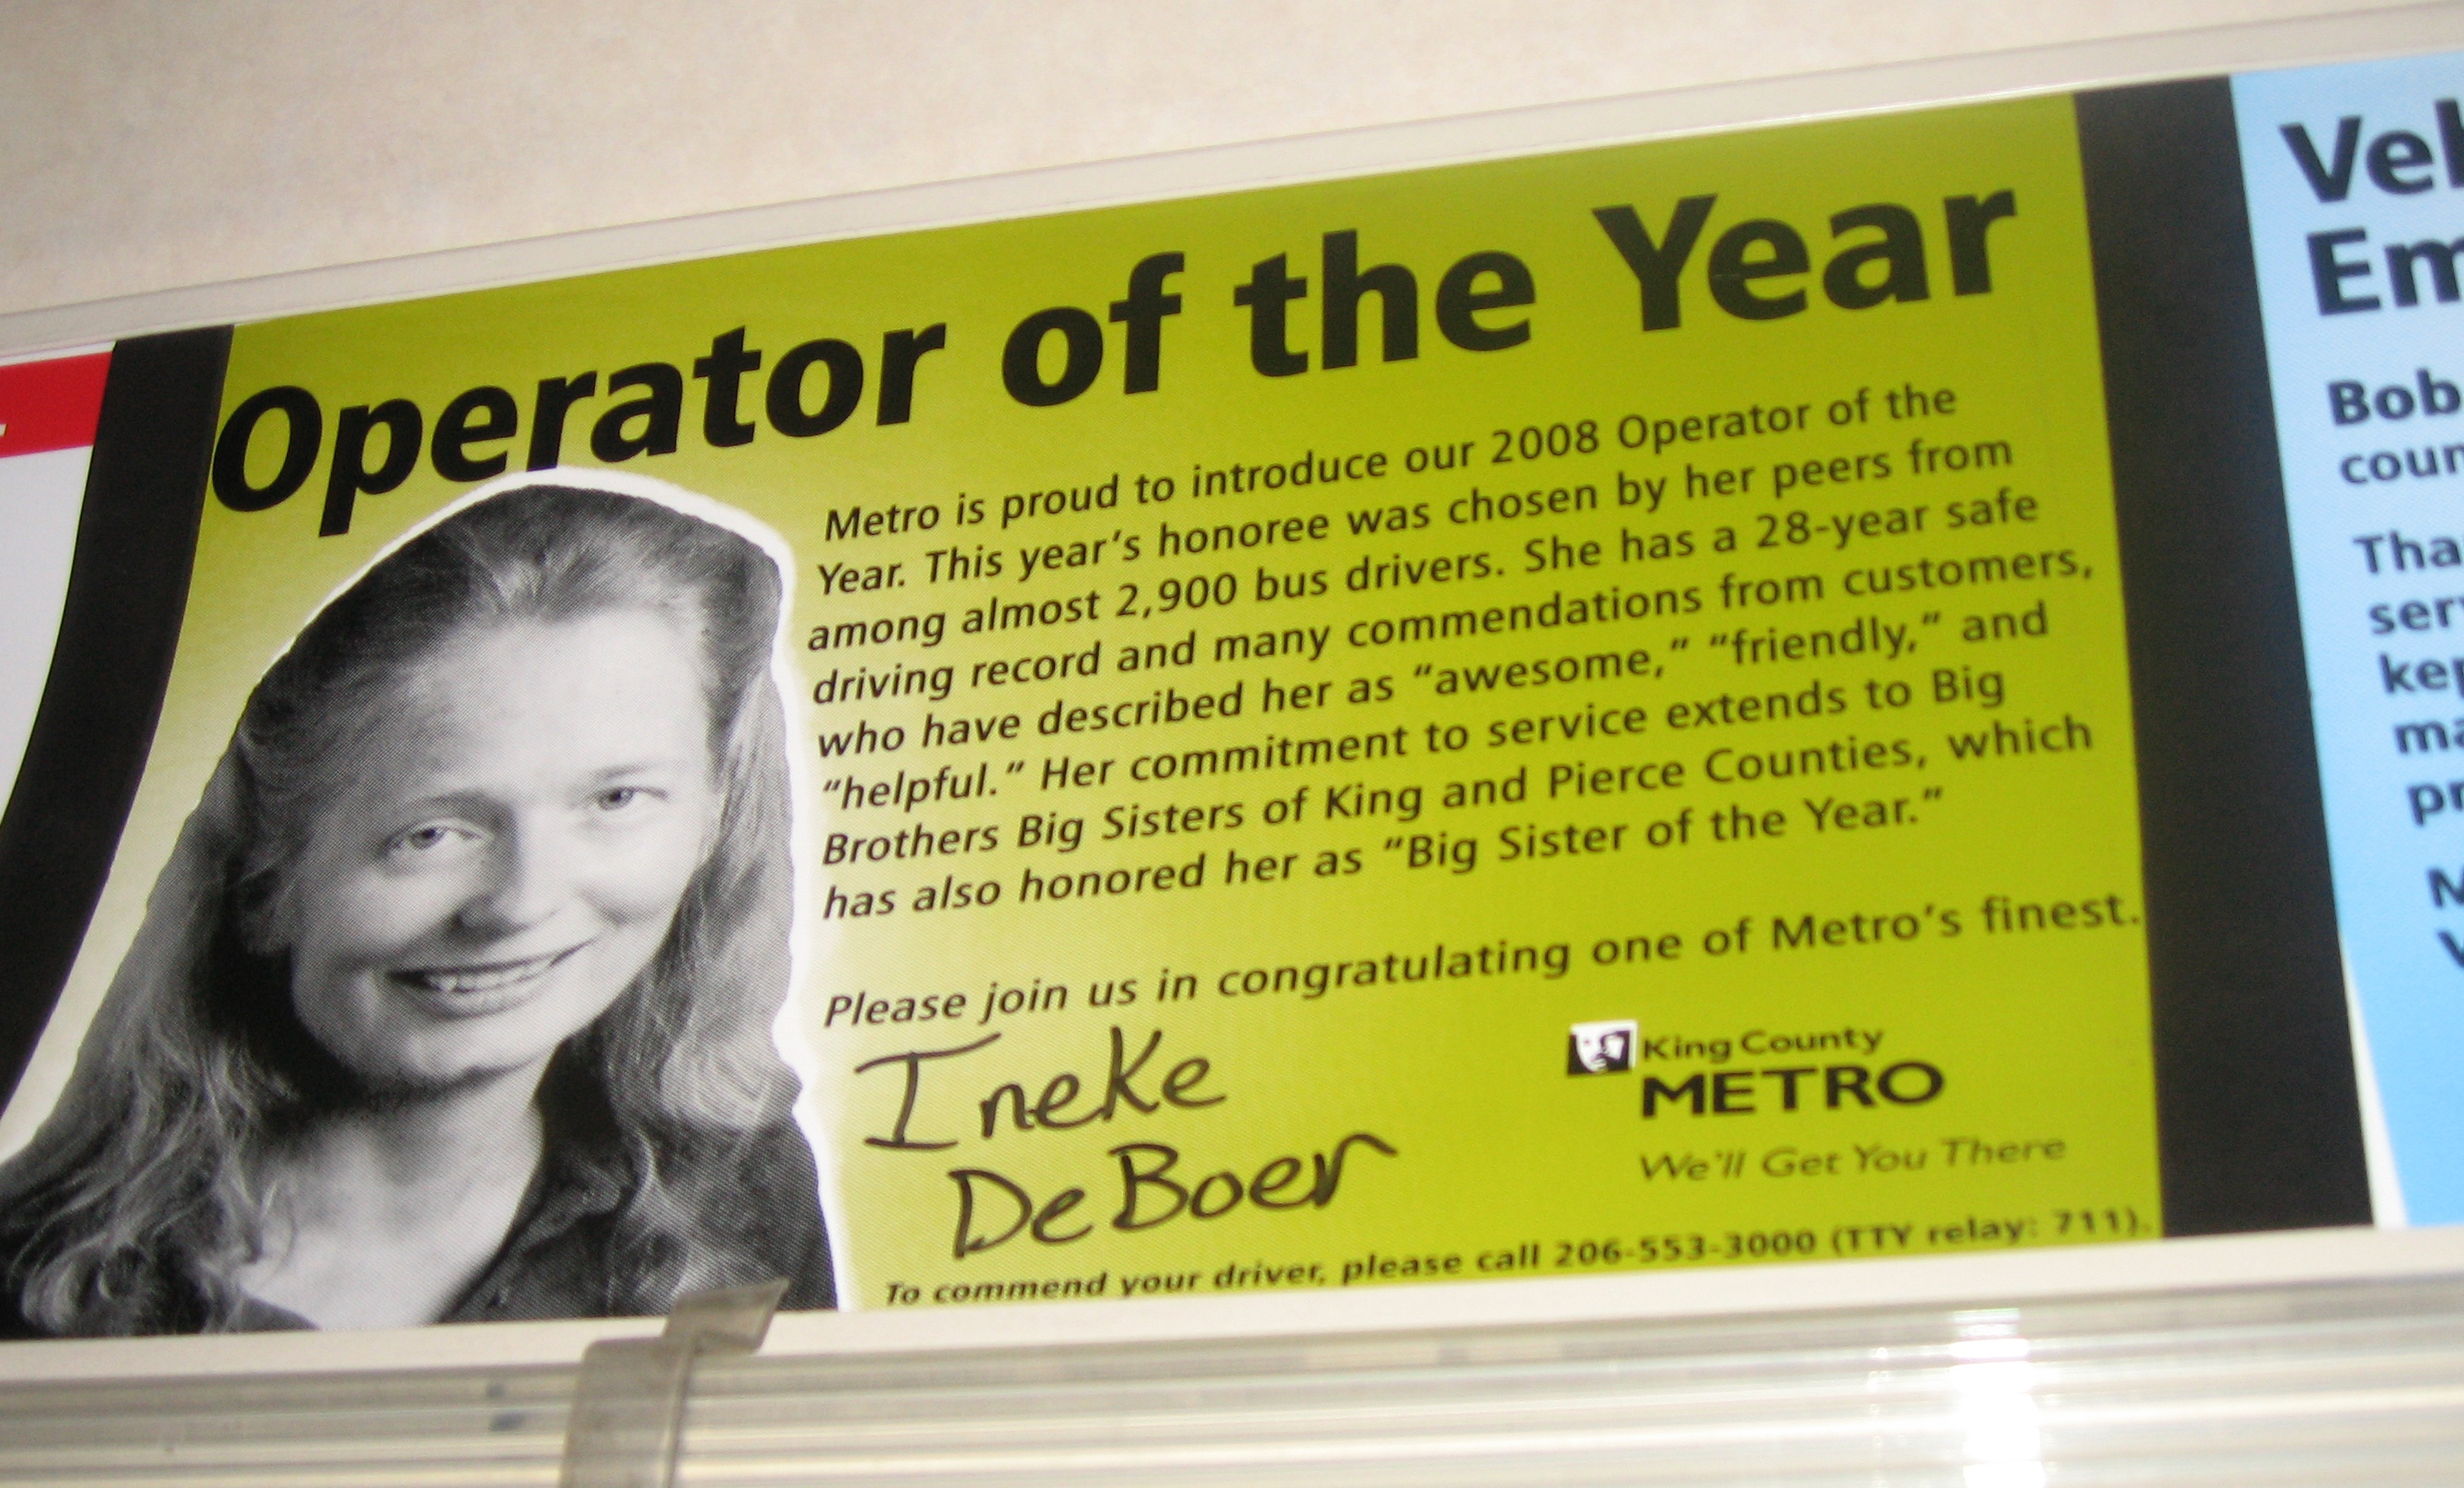 2008 Operator of the Year Ineke DeBoer